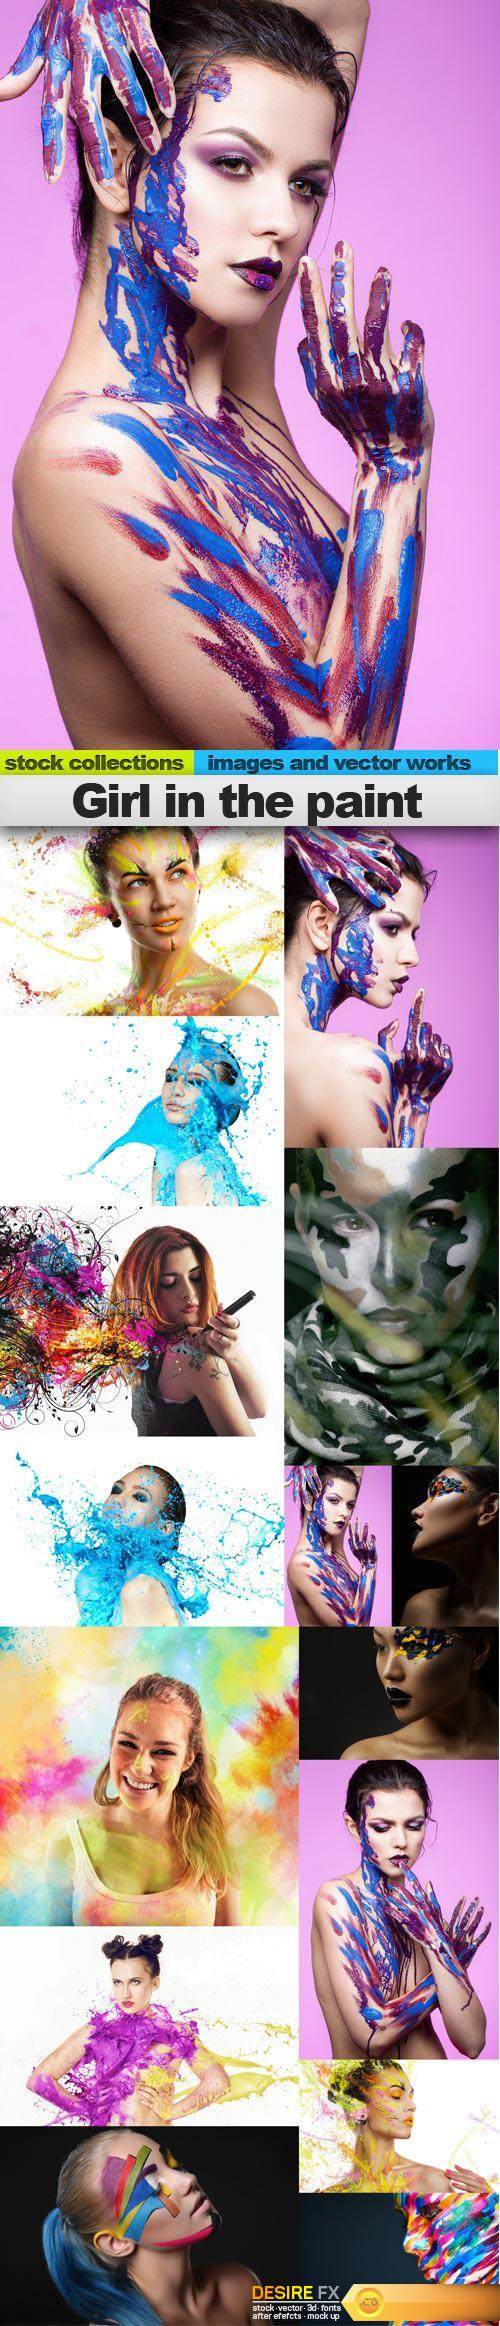 Girl in the paint, 15 x UHQ JPEG  http://www.desirefx.me/girl-in-the-paint-15-x-uhq-jpeg/